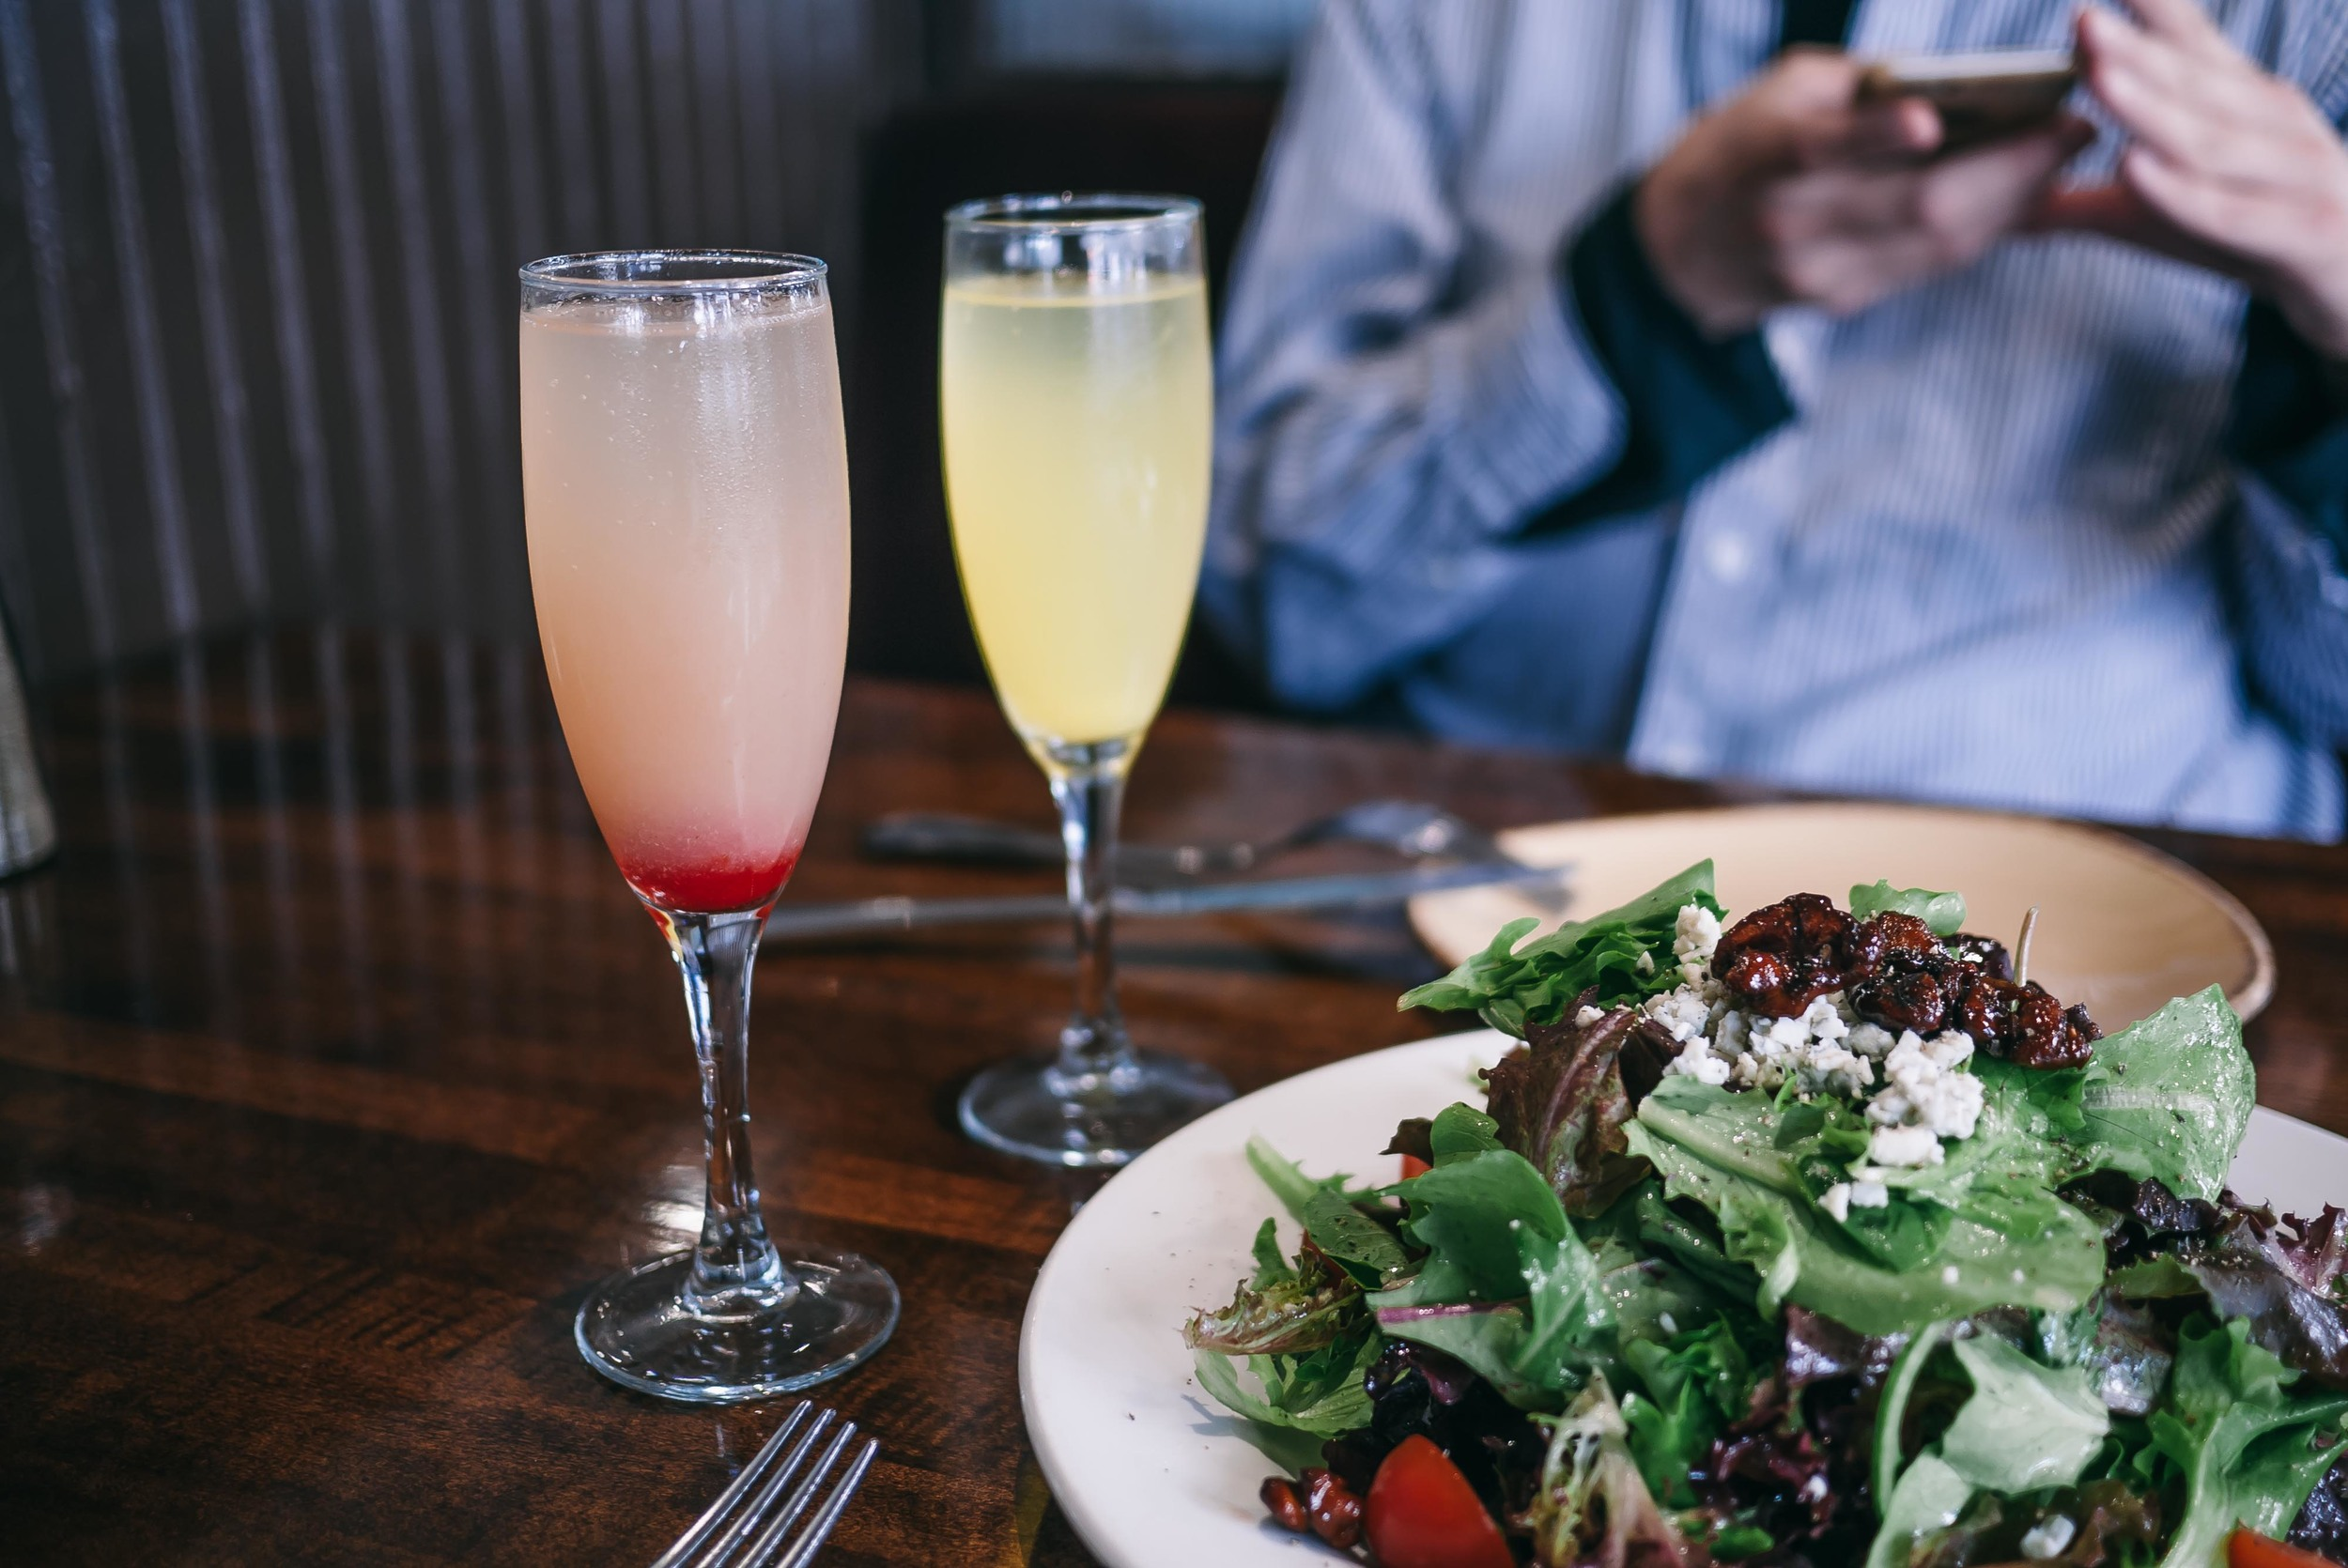 Refreshing brunch cocktails: Classic mimosa + bellinis. Fruity, effervescent and a balanced ratio of champagne and juice. Never a bad idea.